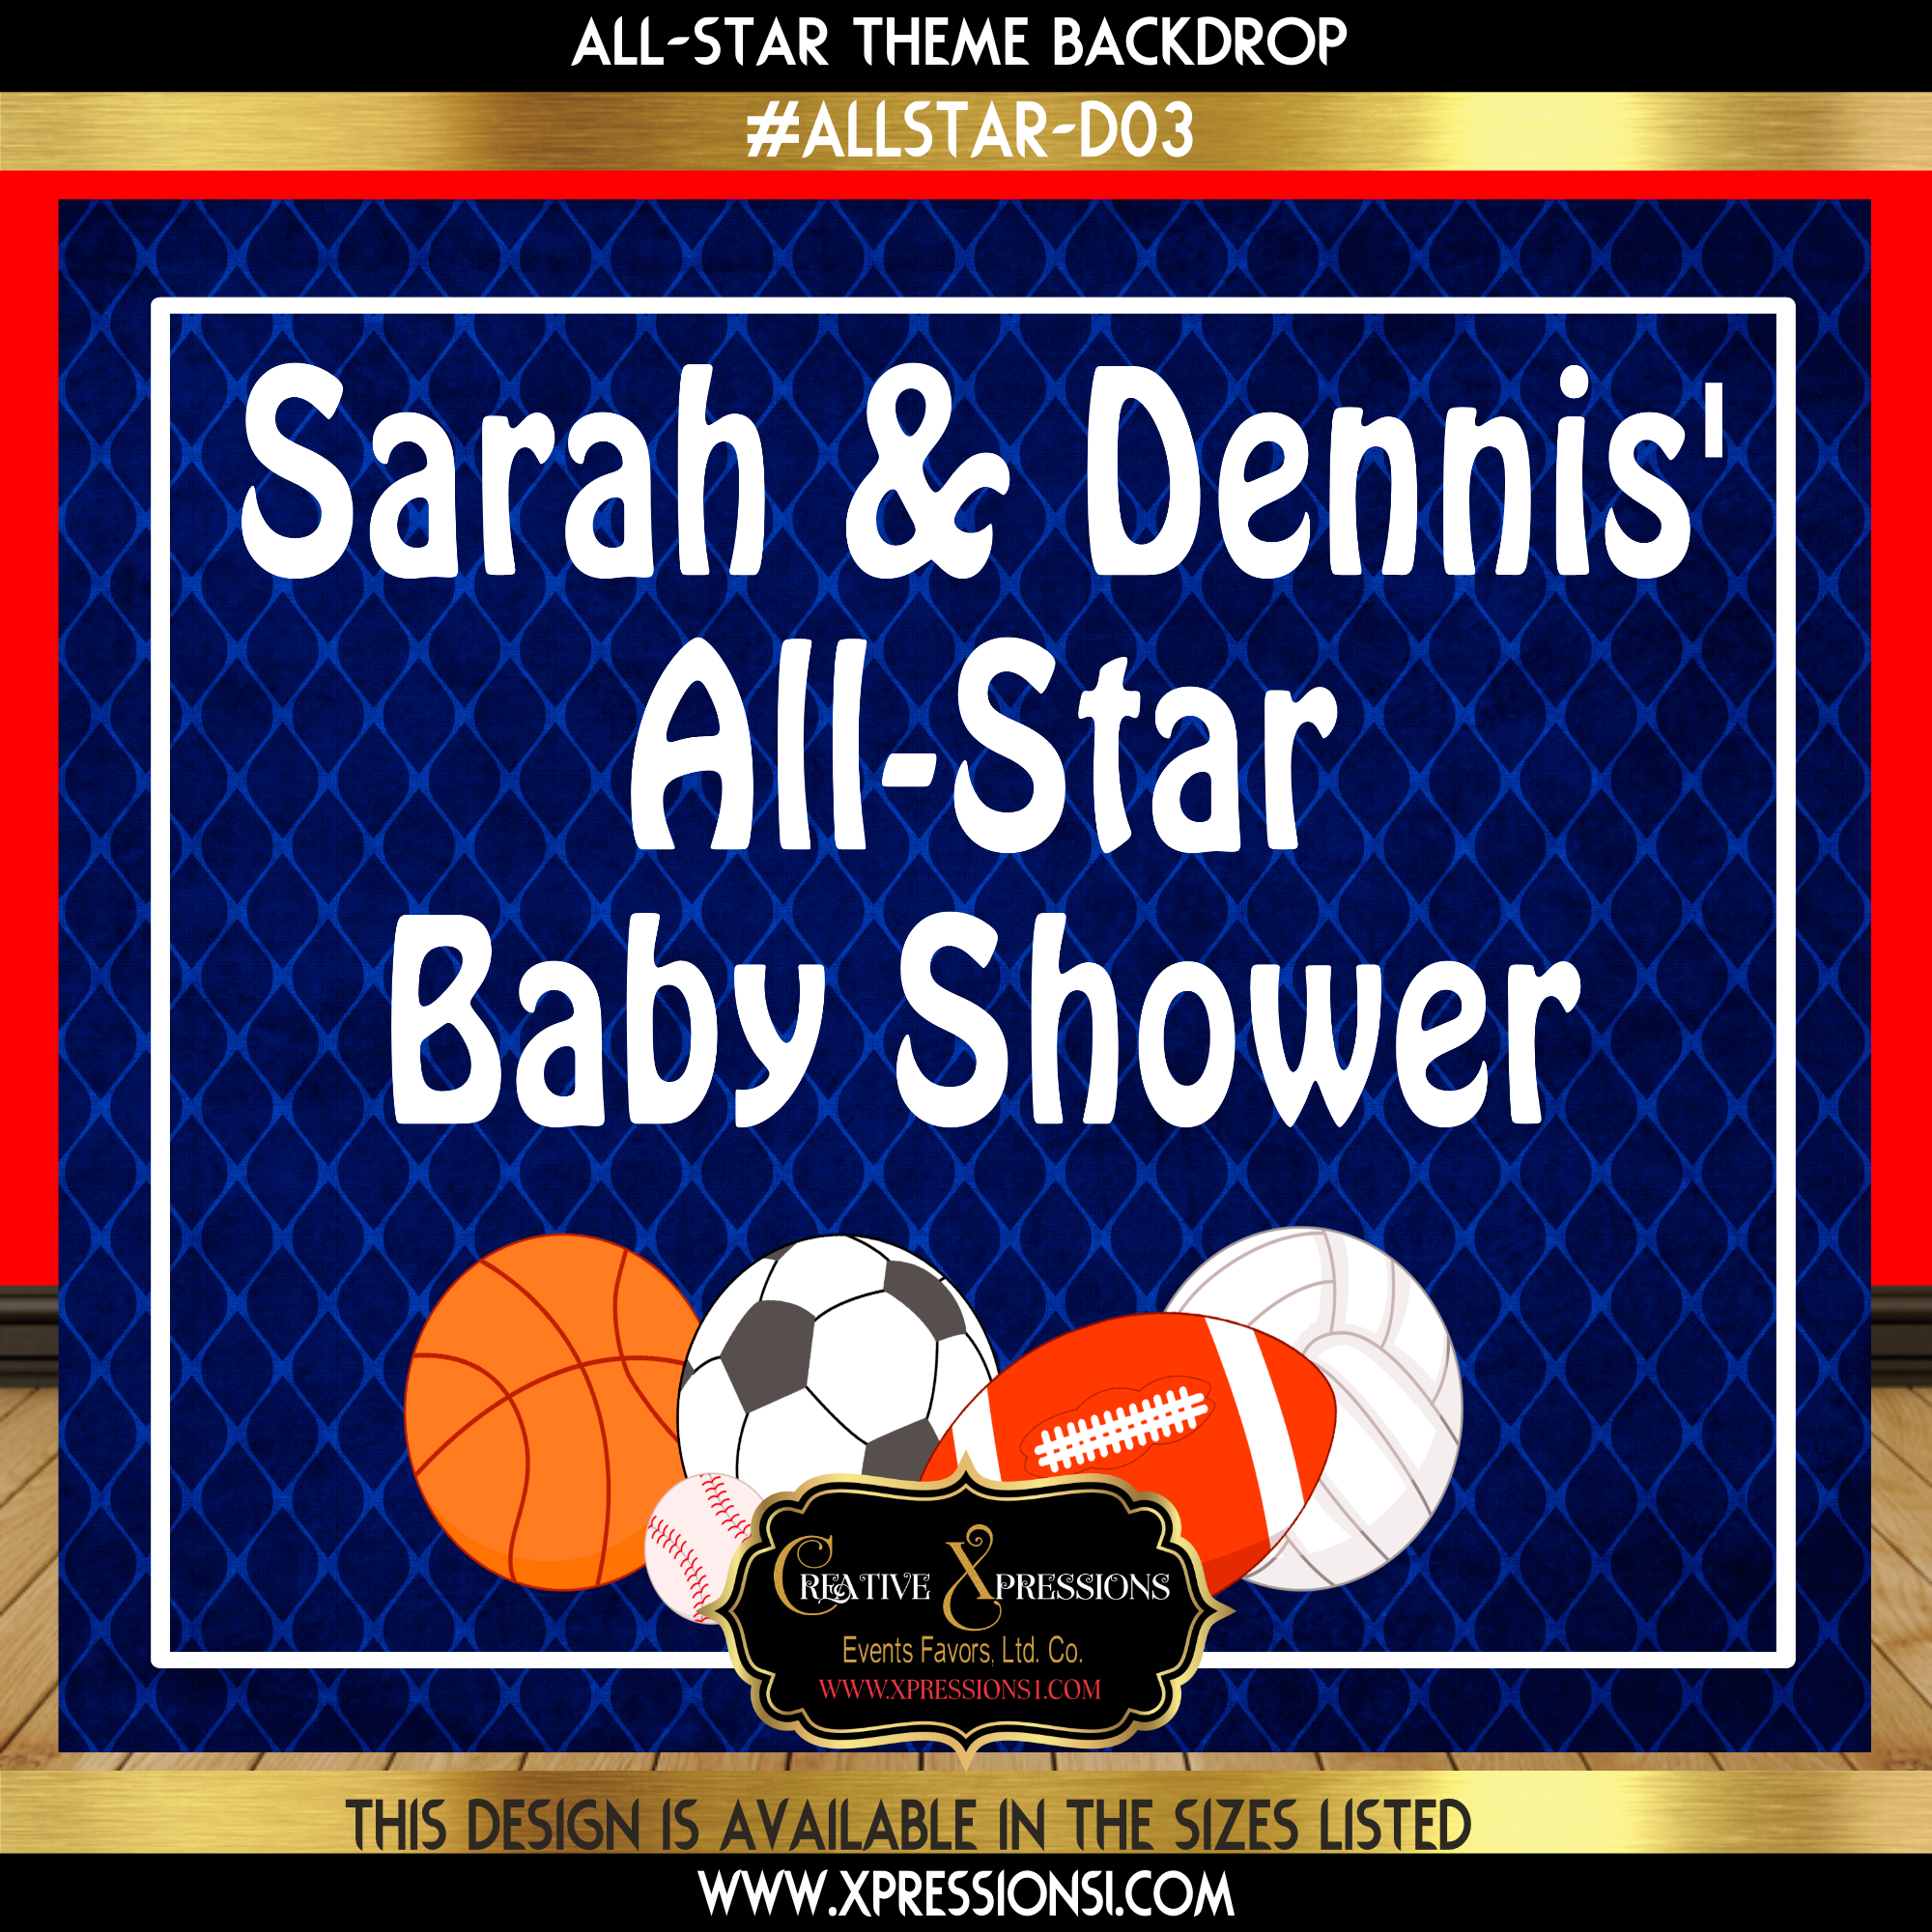 All-Star Baby Shower Backdrop